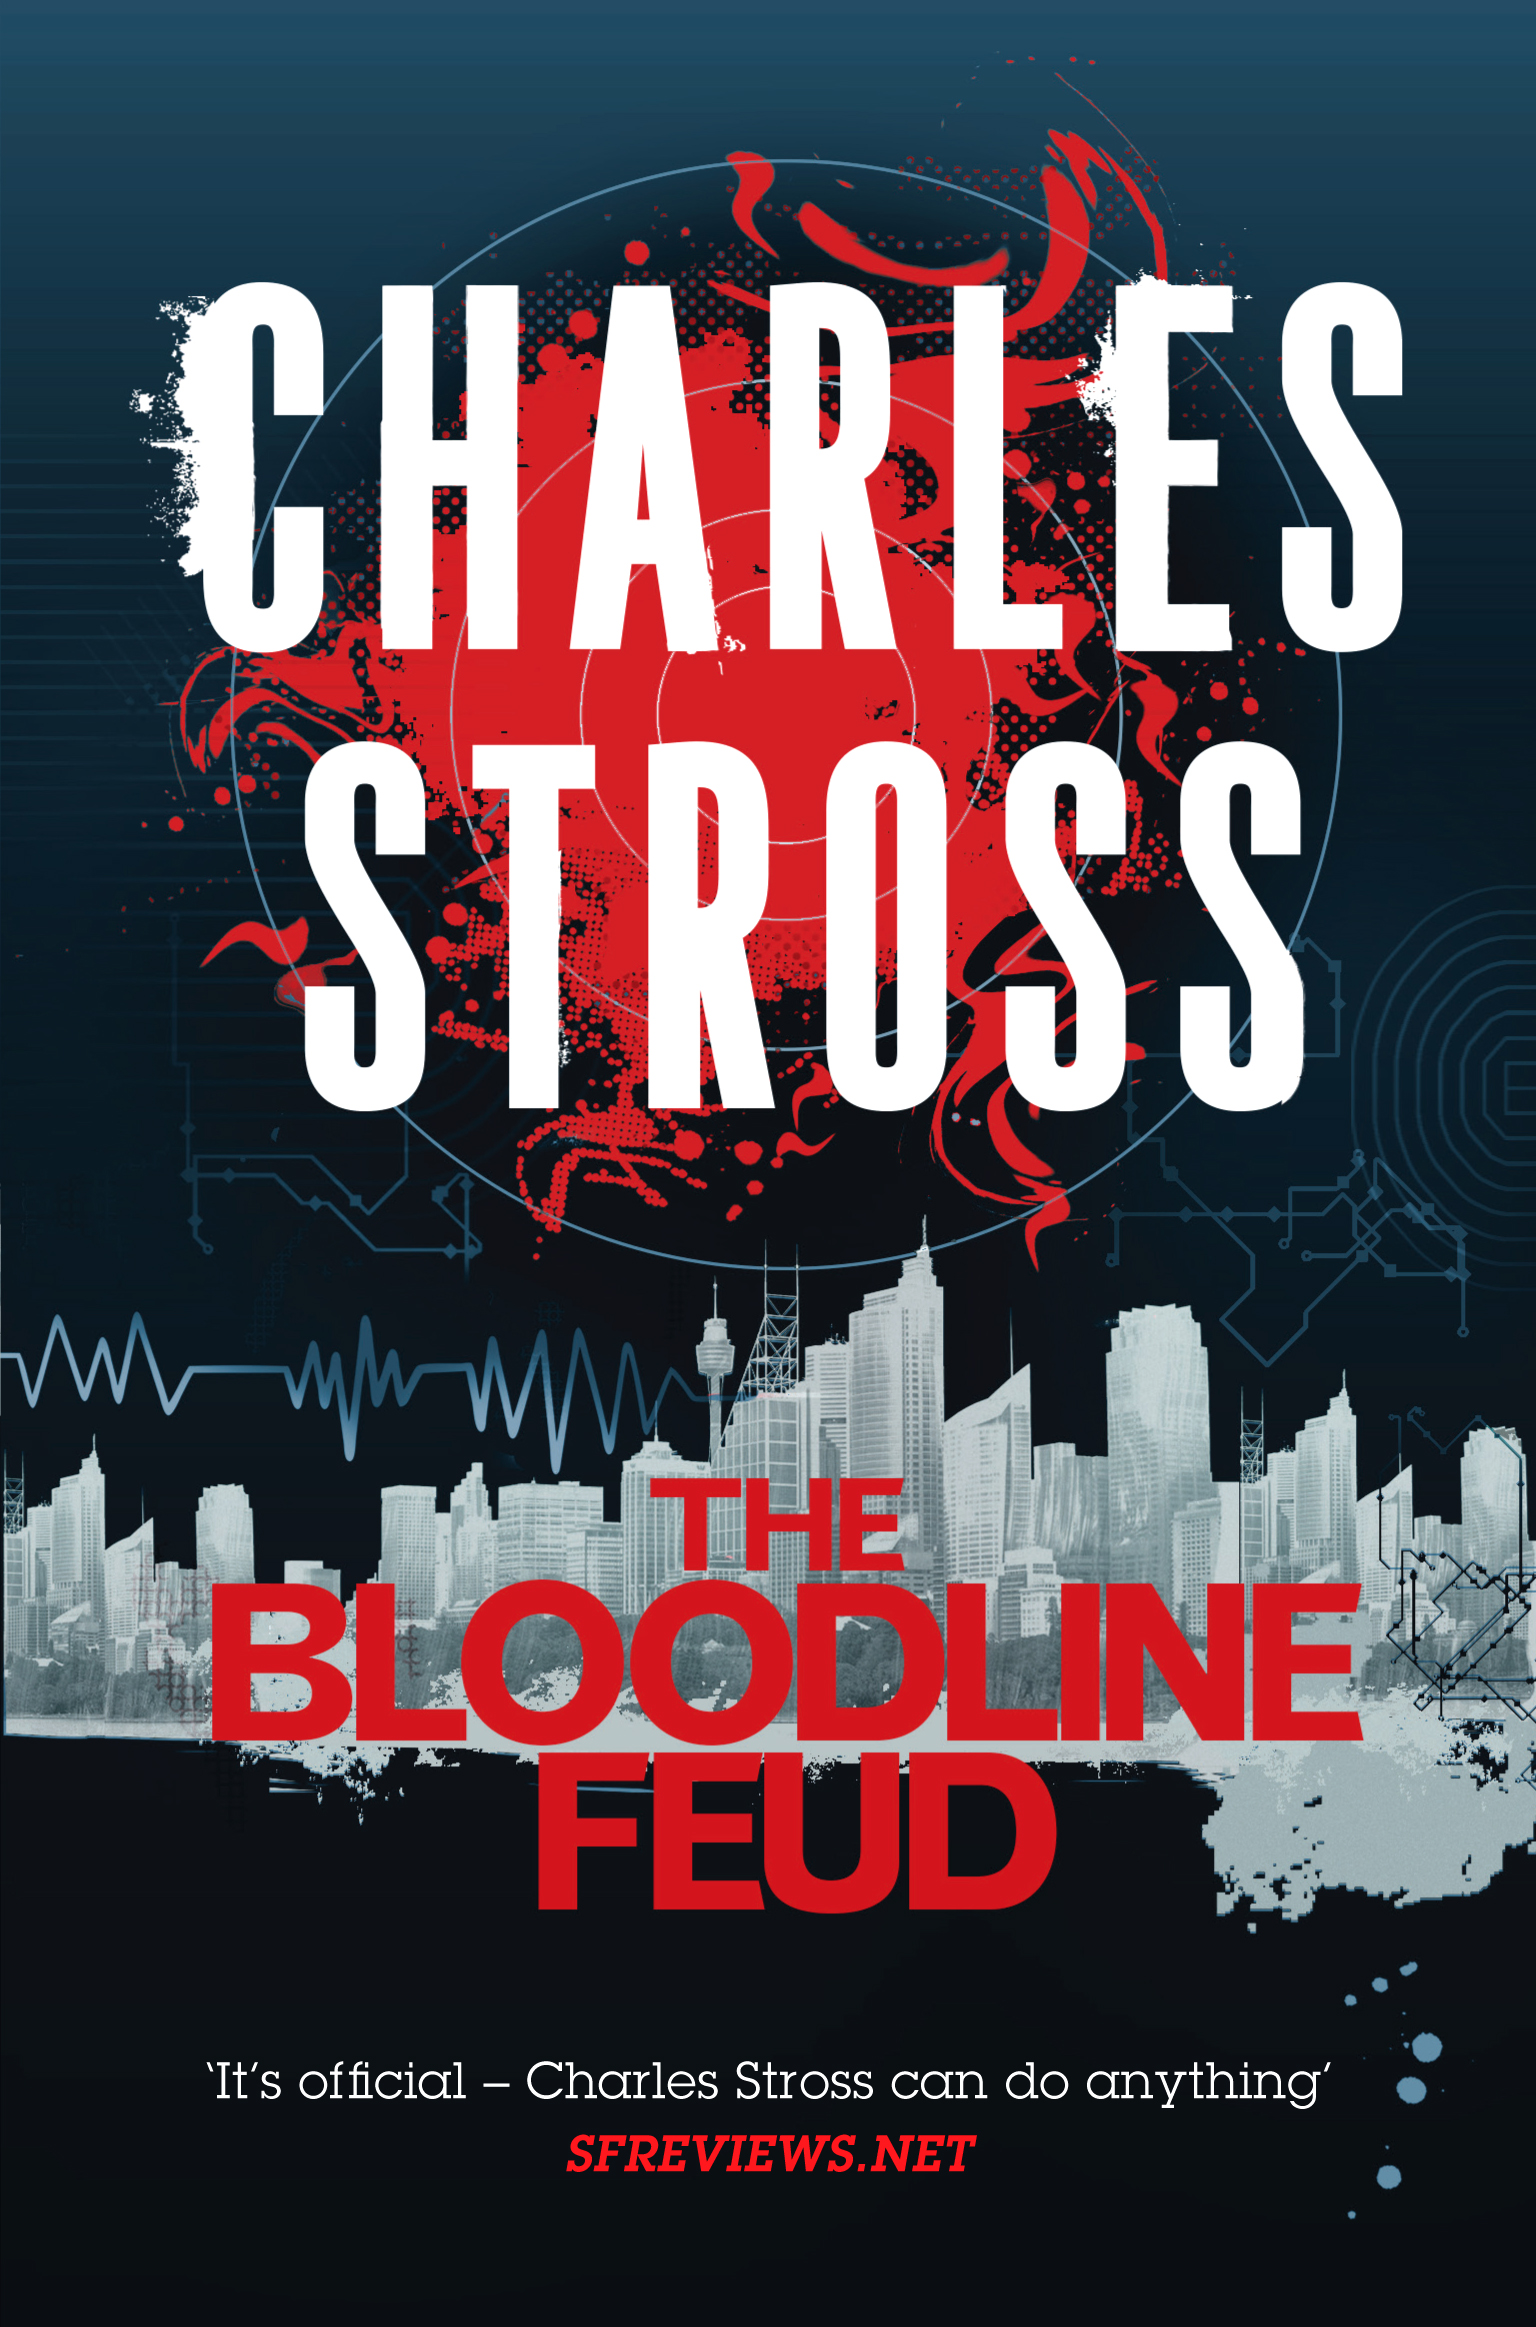 THE BLOODLINE FEUD: Tor UK omnibus reissue of original series